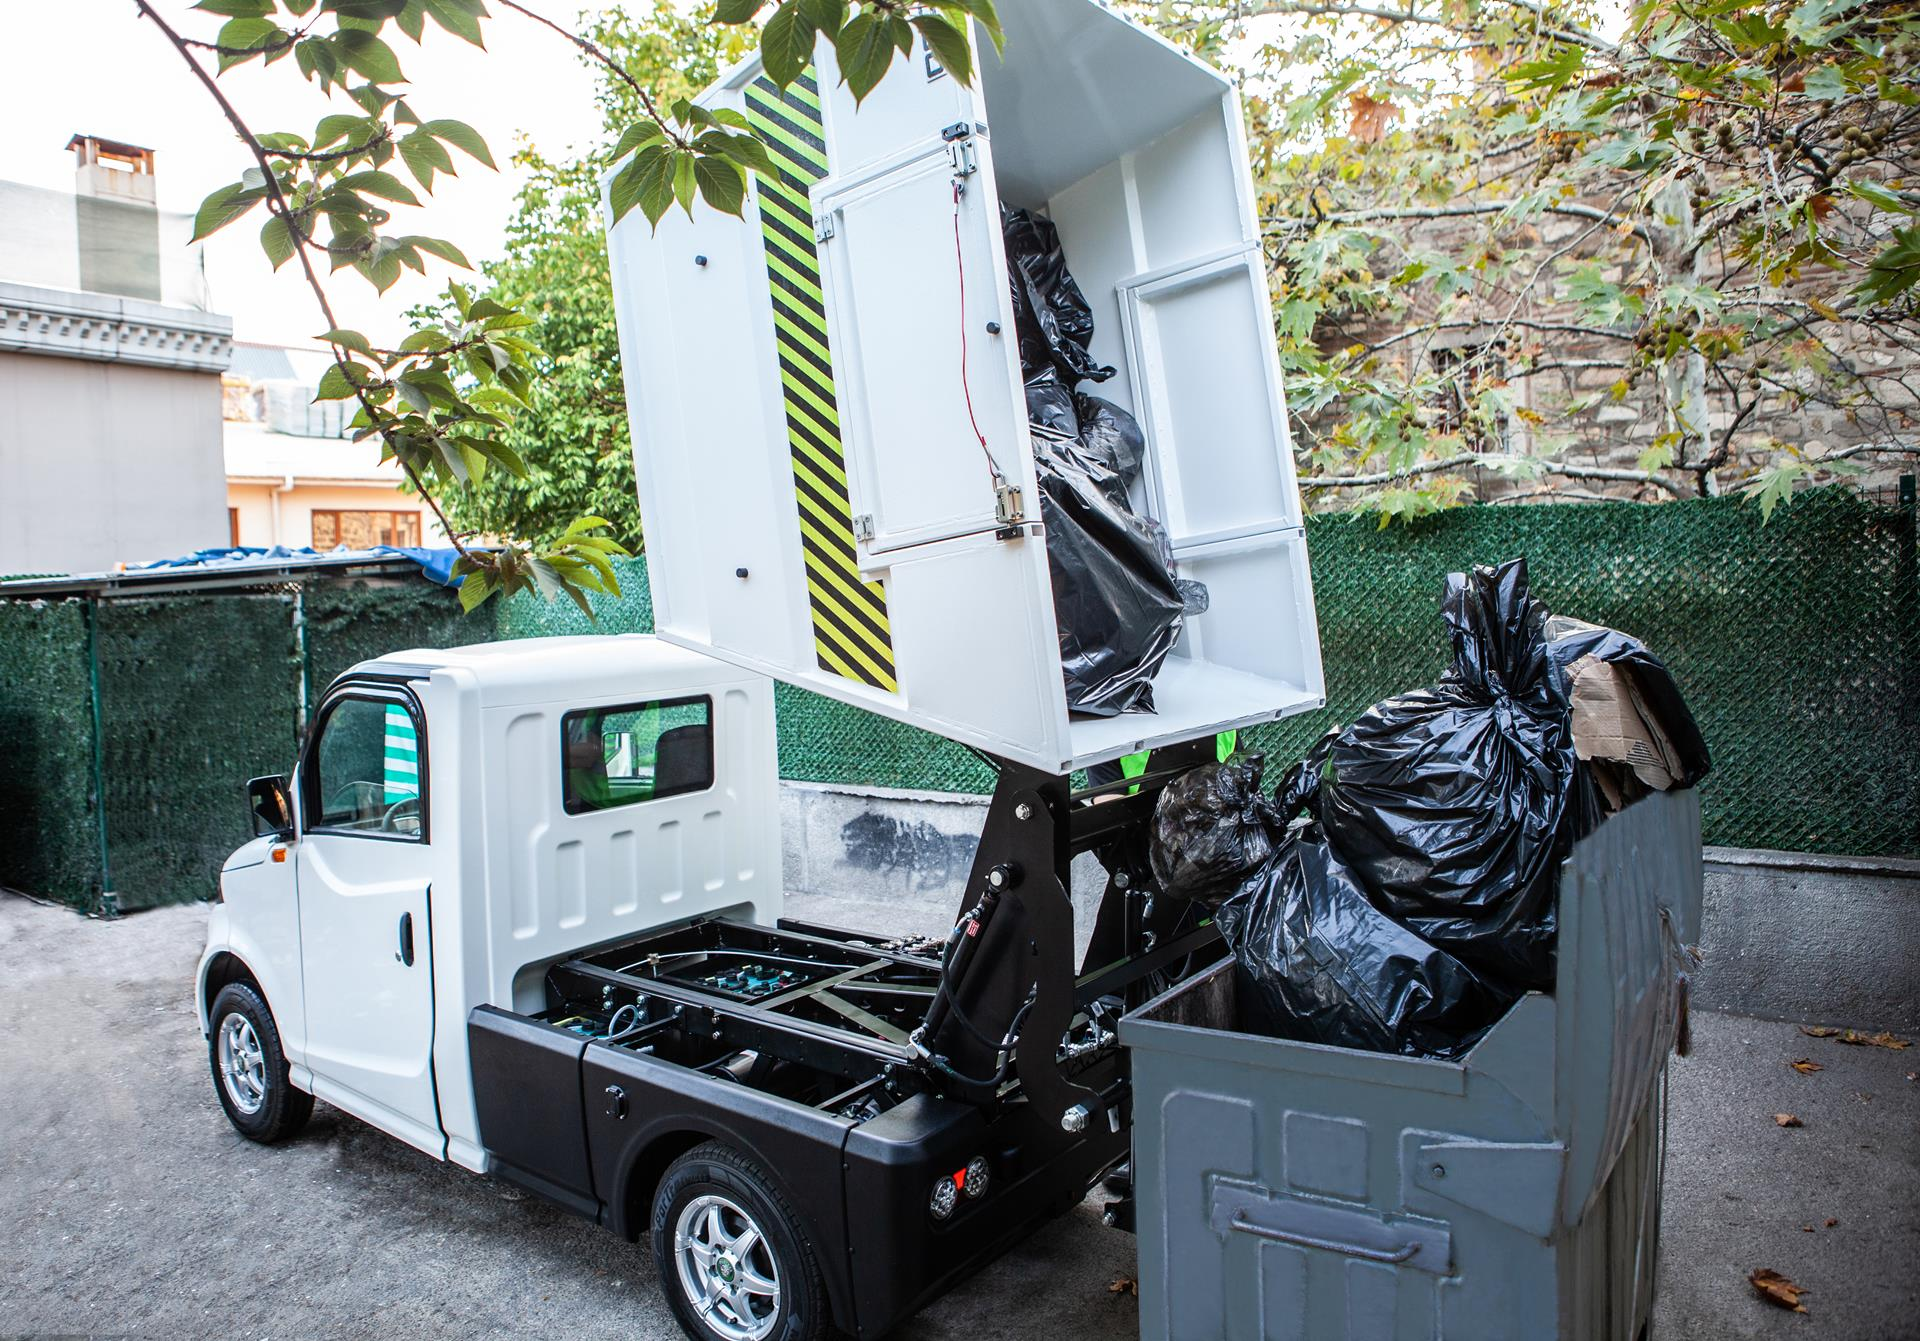 P-1000 Waste Tipper